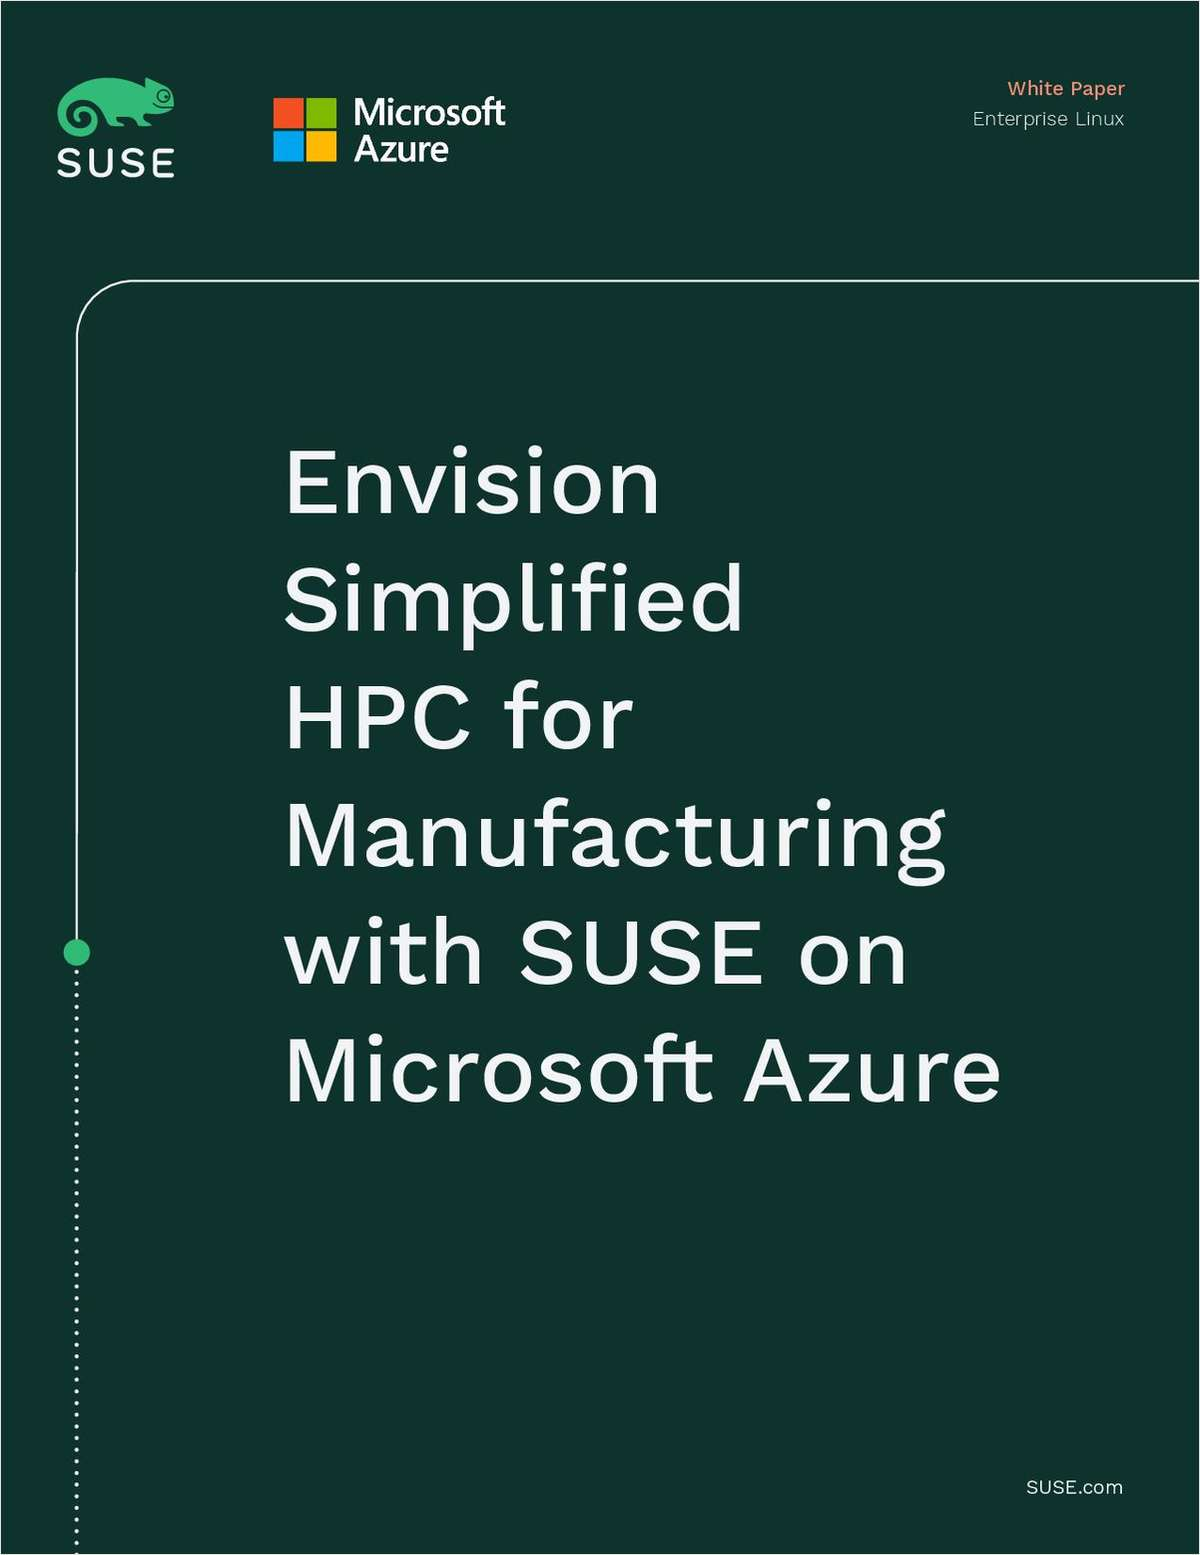 Envision Simplified HPC for Manufacturing with SUSE on Microsoft Azure